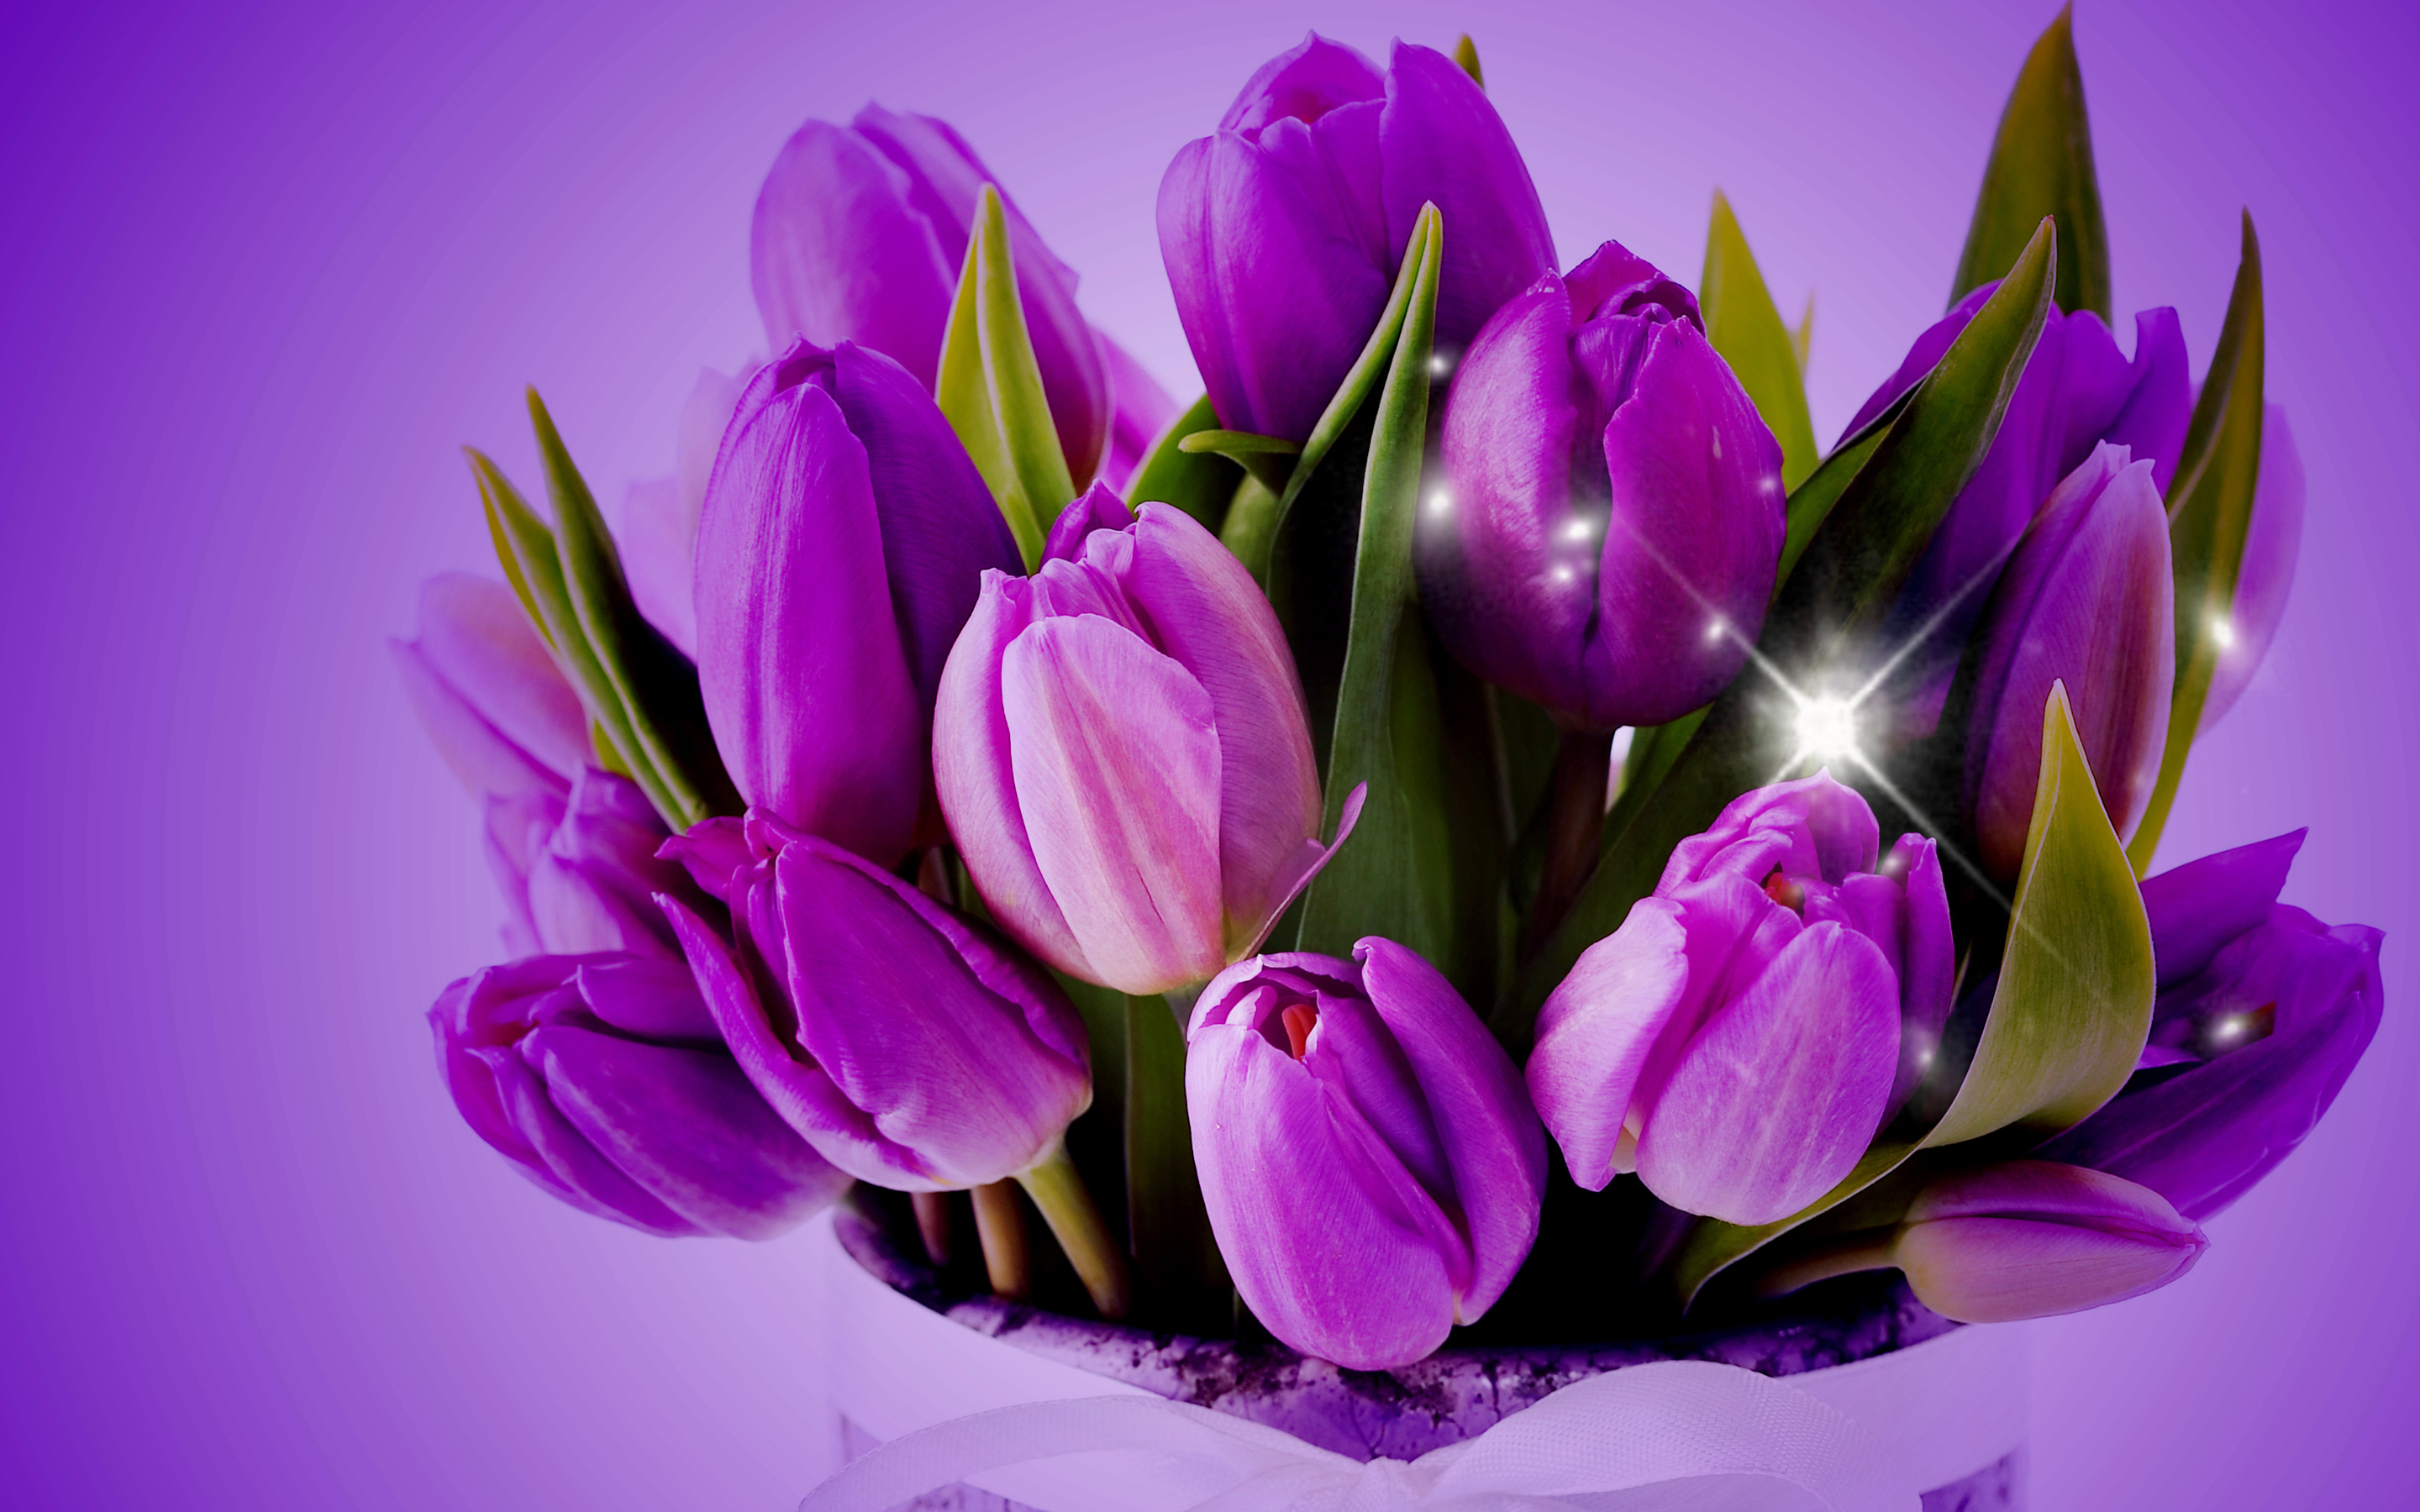 purple tulips hd wallpaper - photo #8